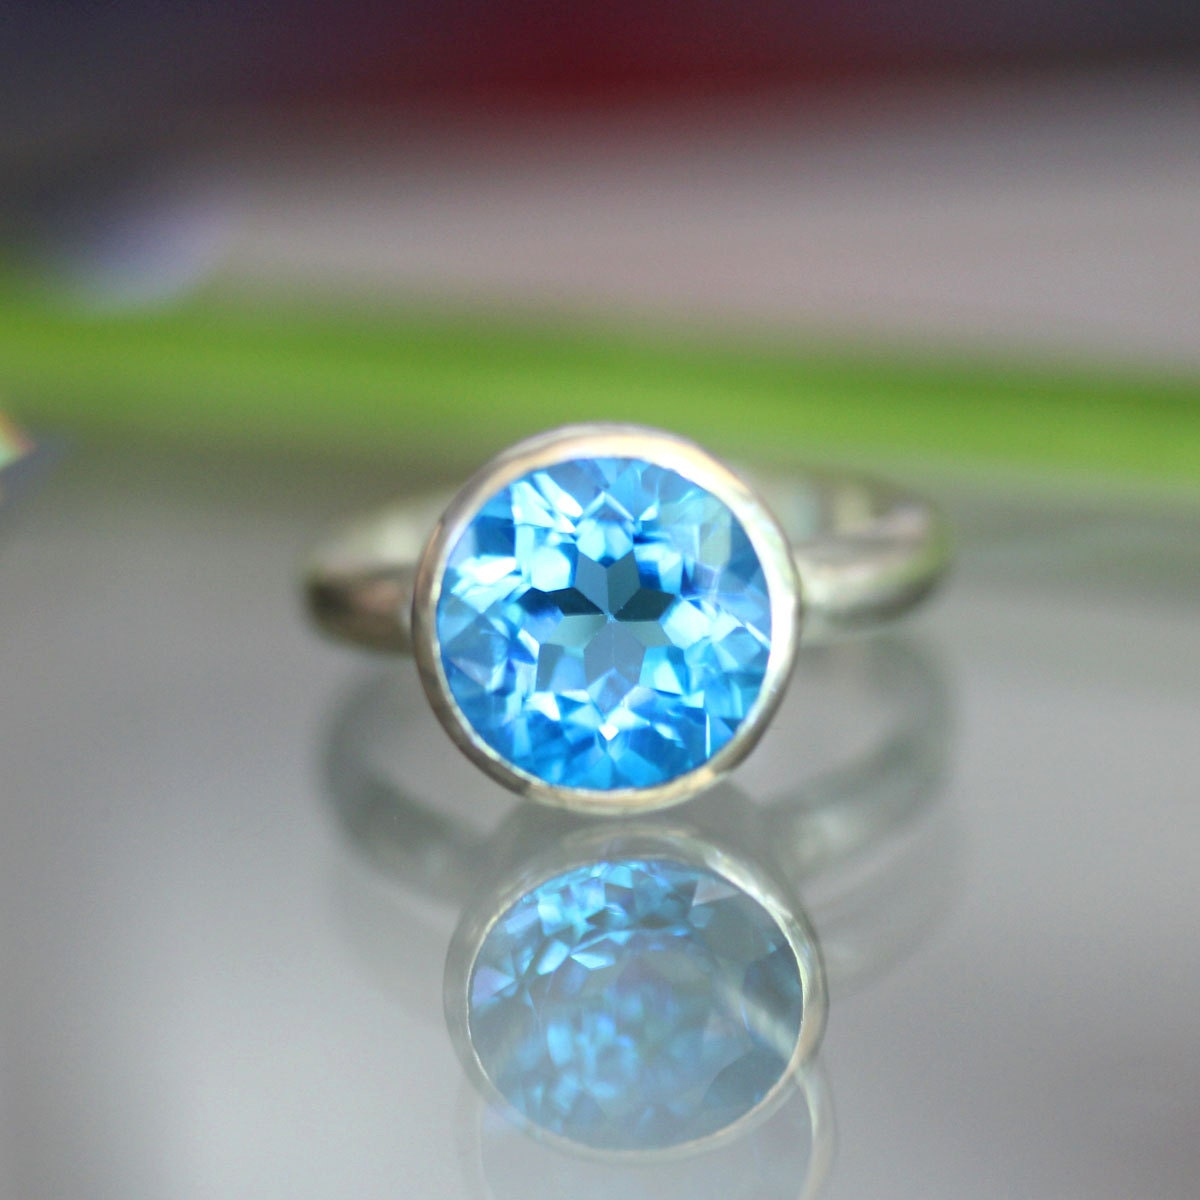 Swiss Blue Topaz Sterling Silver Ring Gemstone Ring In